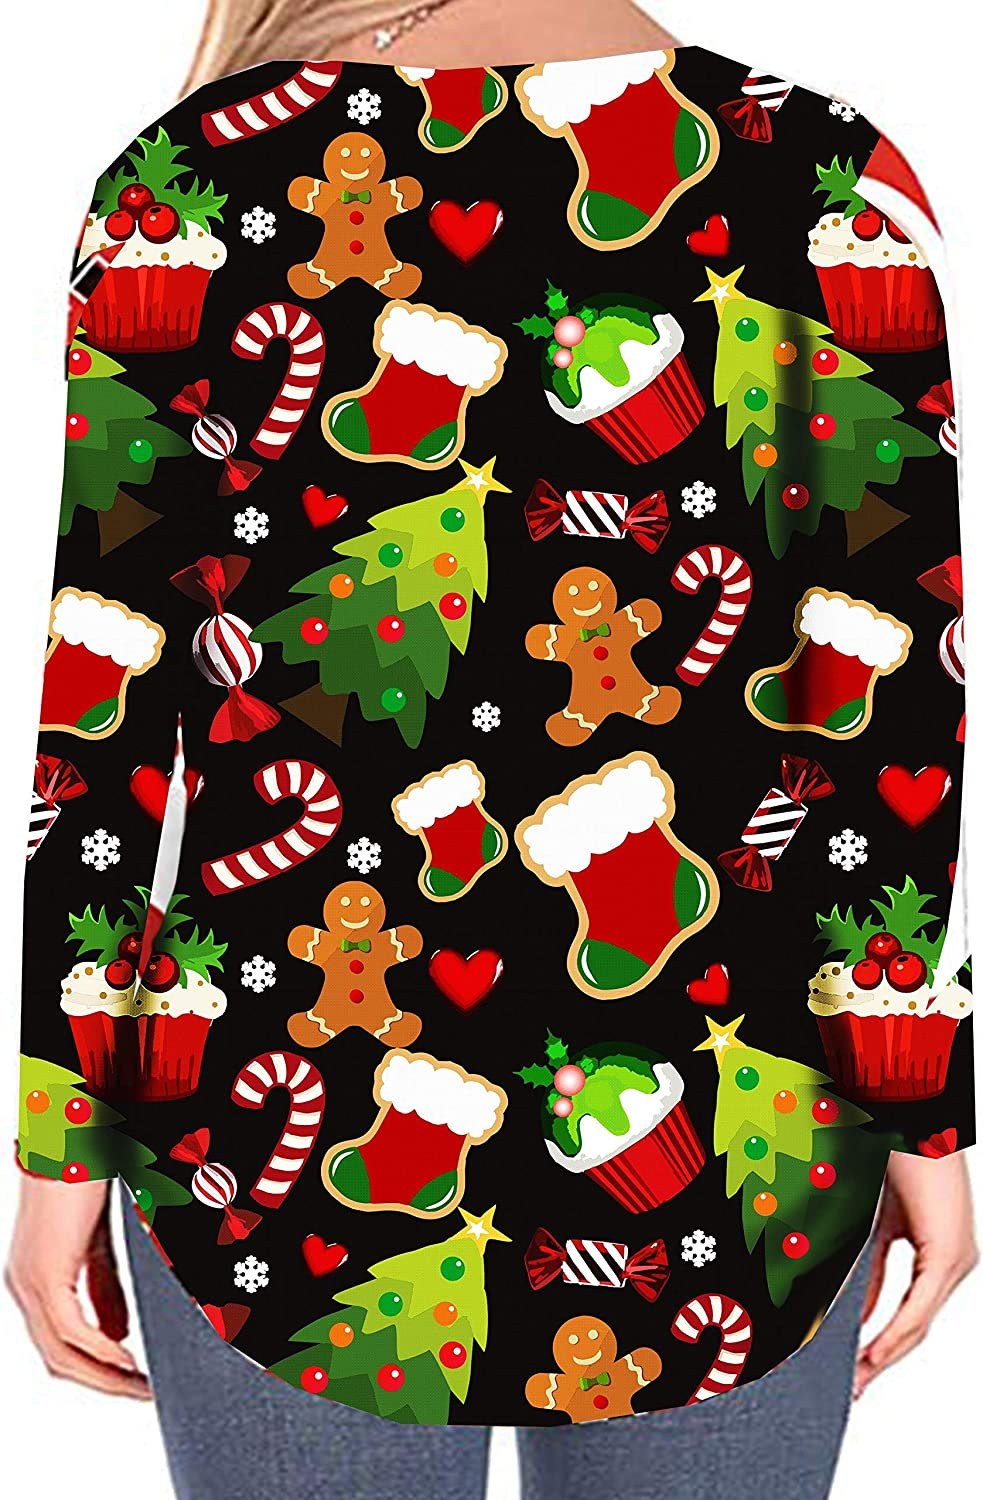 PESION Womens Plus Size Tops Christmas Shirts Casual Tee Tunic Shirts Blouses